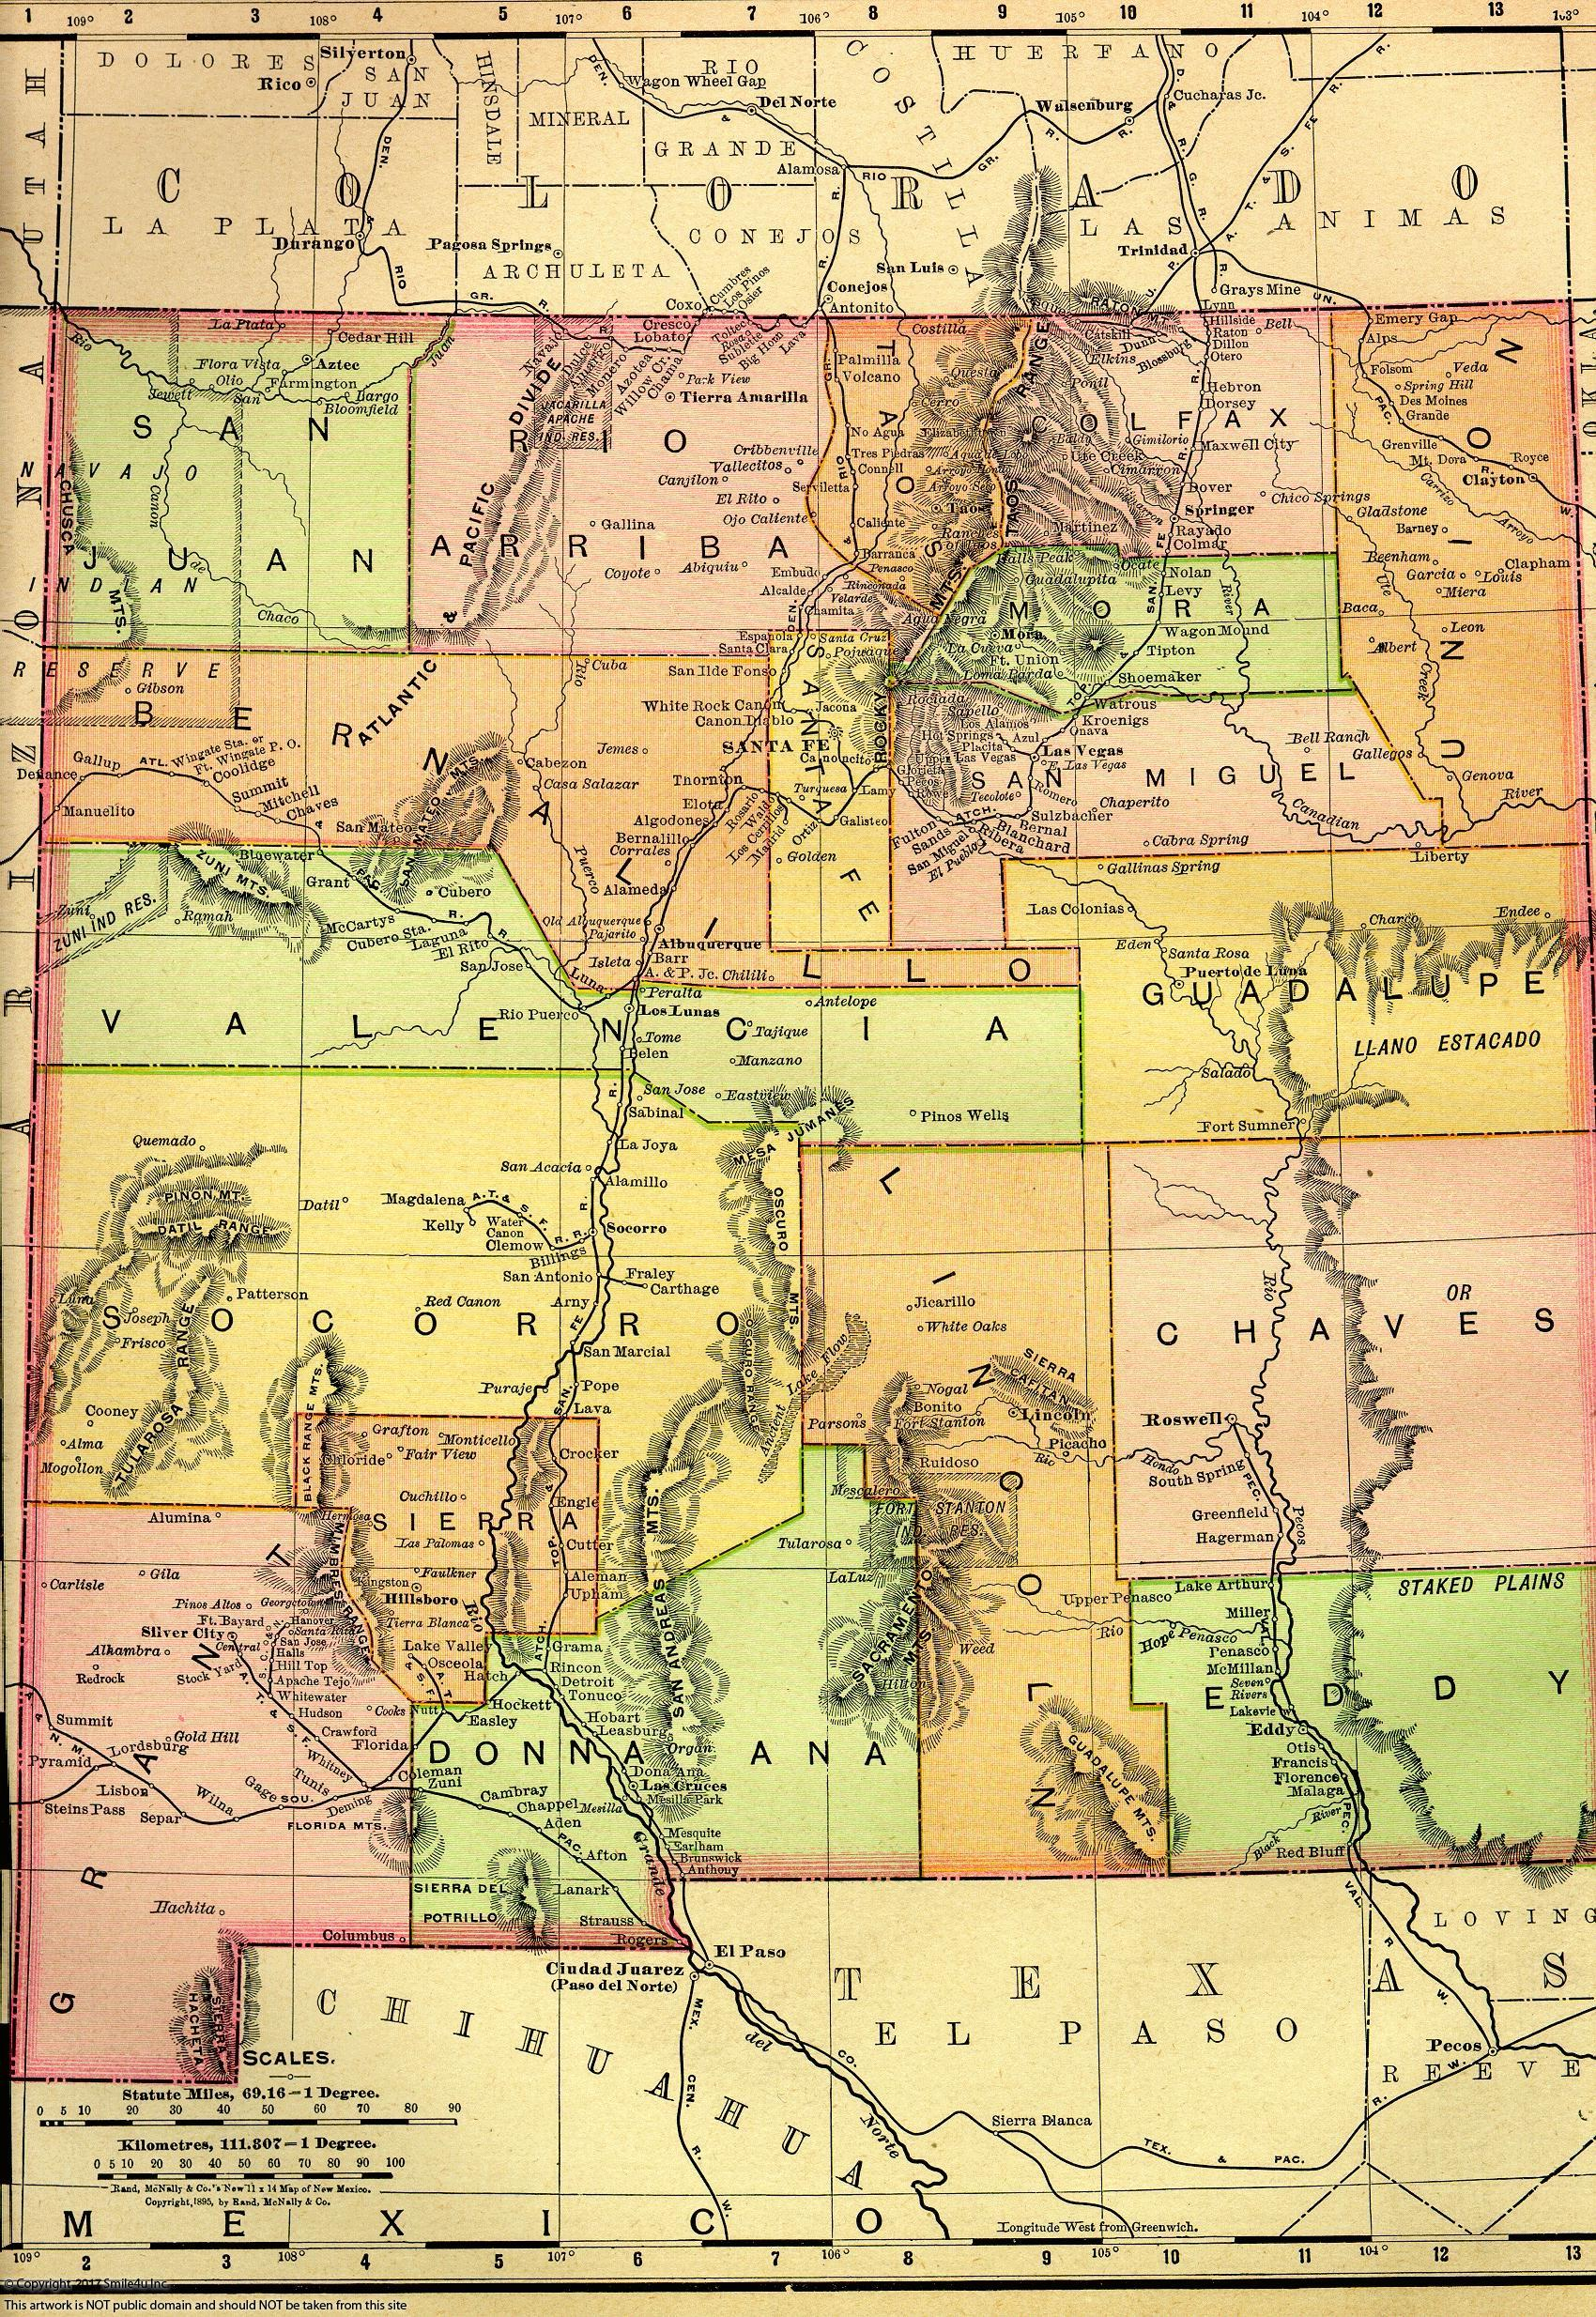 997592_watermarked_New Mexico State Map in 1895.jpg